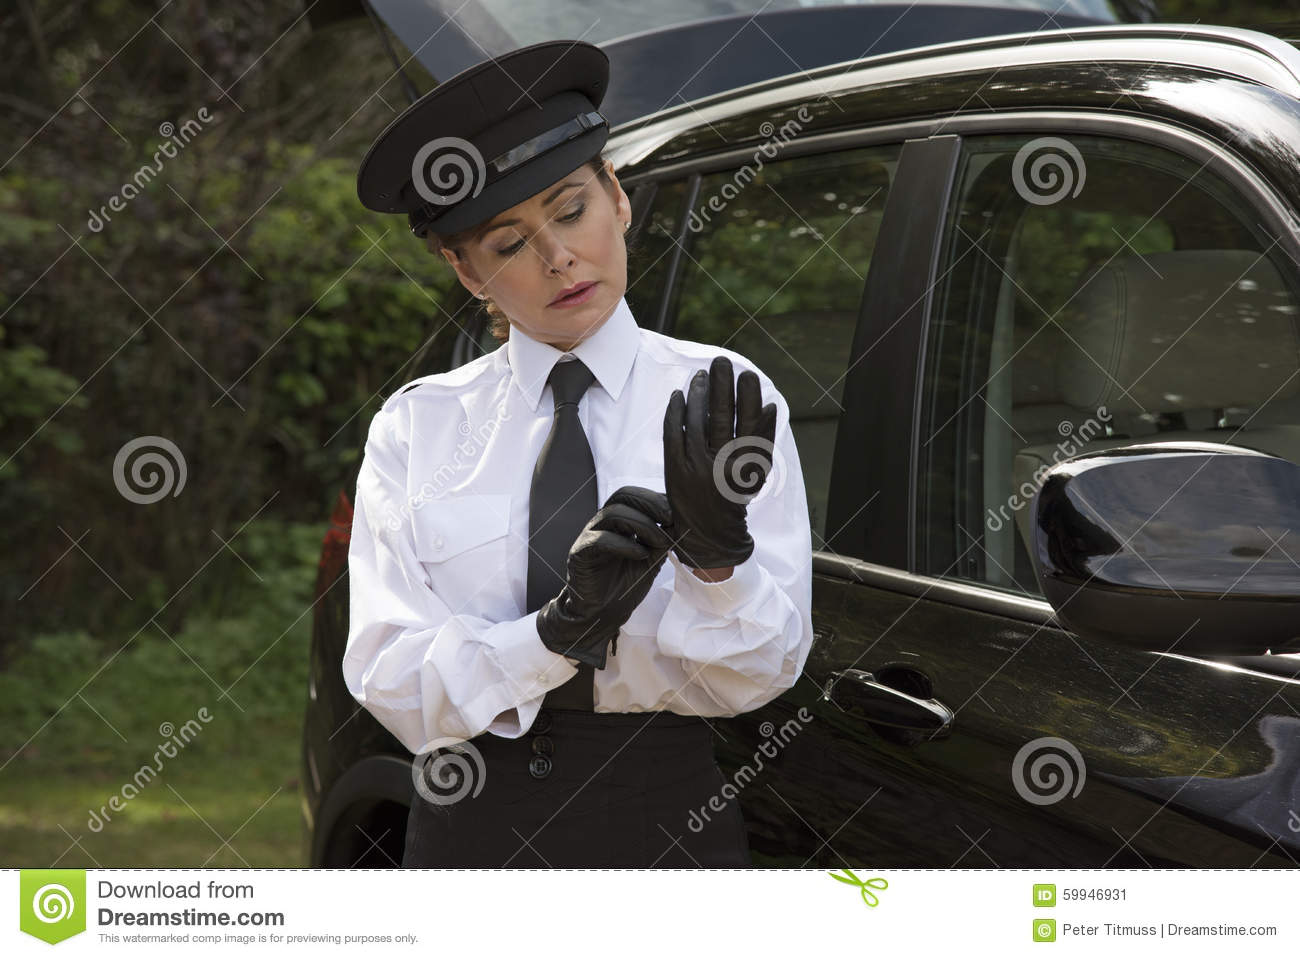 Black leather uniform gloves - Professional Driver Putting On Her Driving Gloves Stock Image